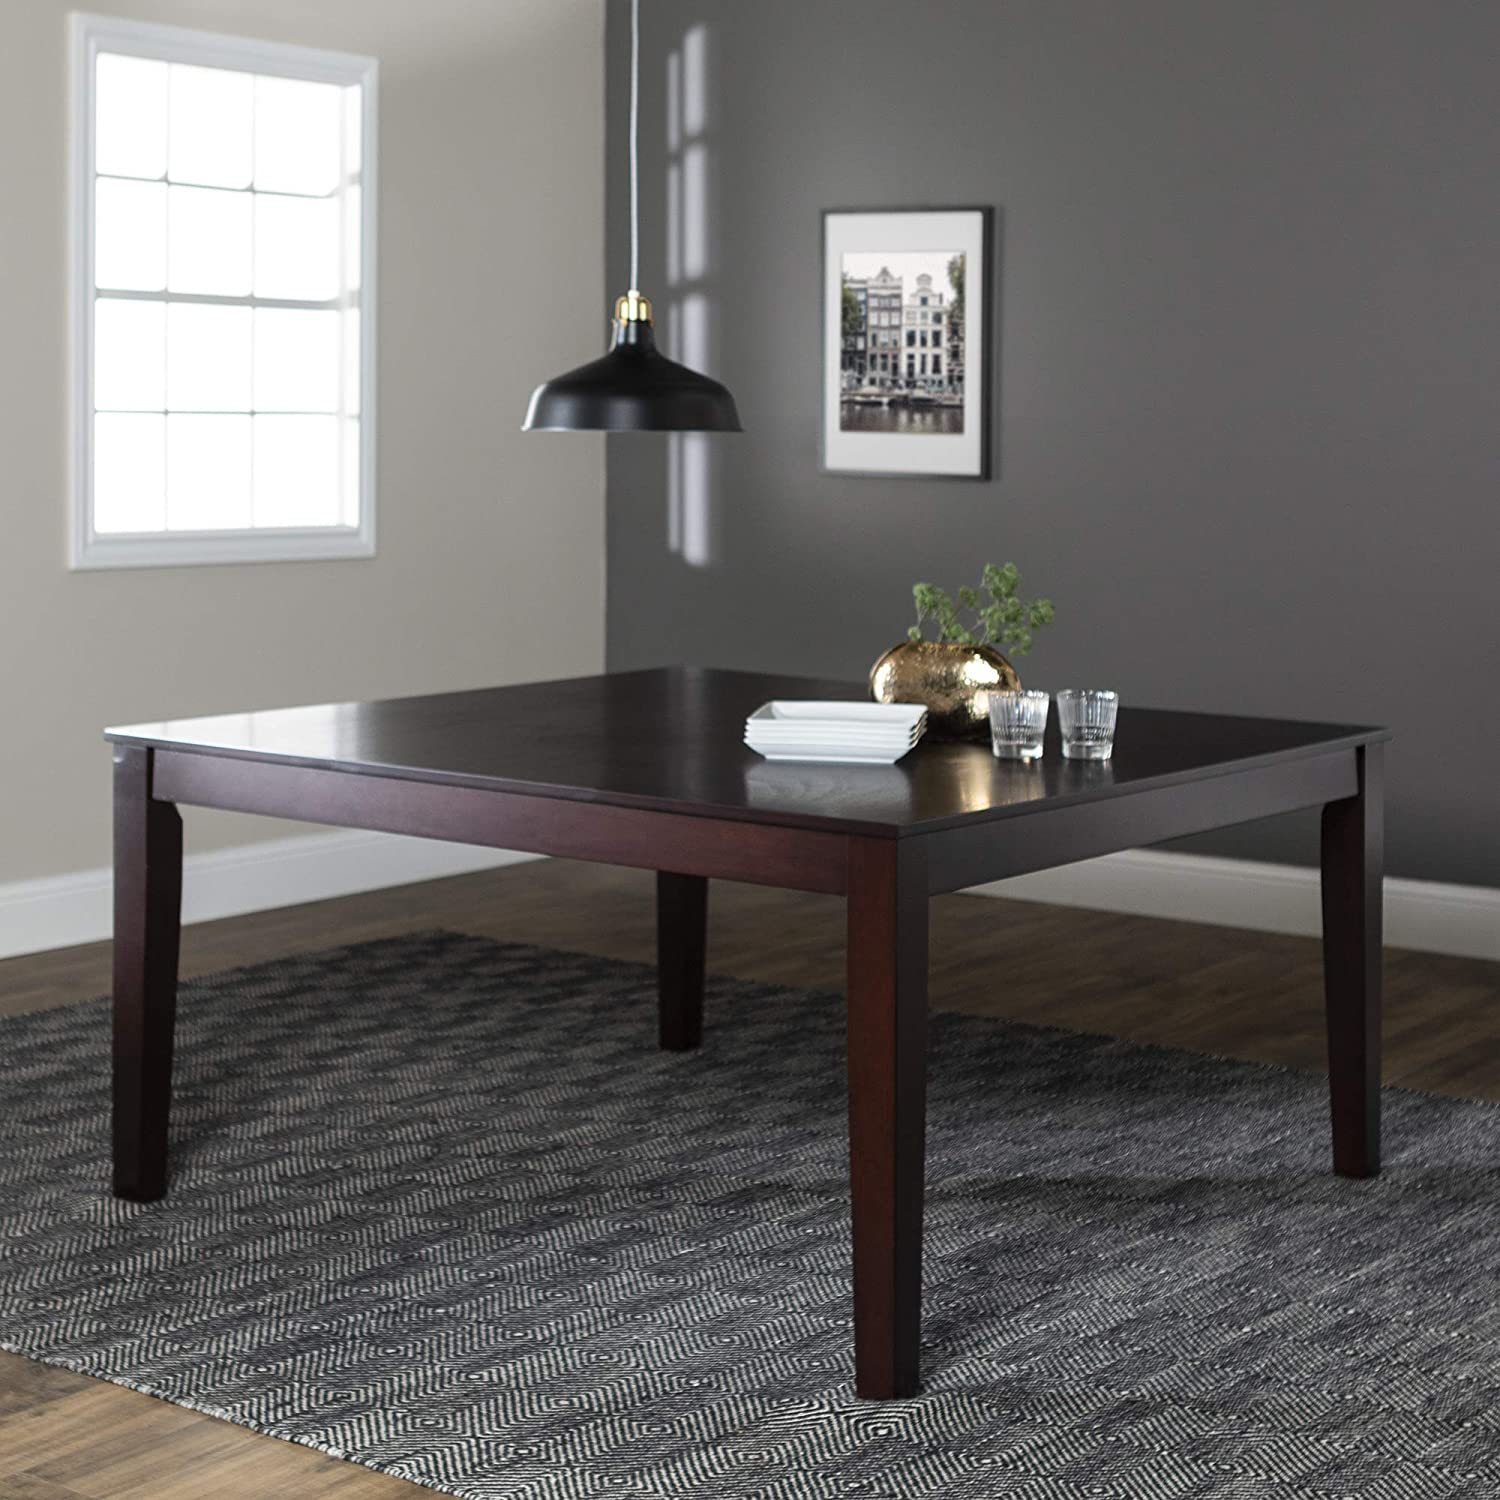 WE Furniture Square Wood Dining Table, 60 Espresso